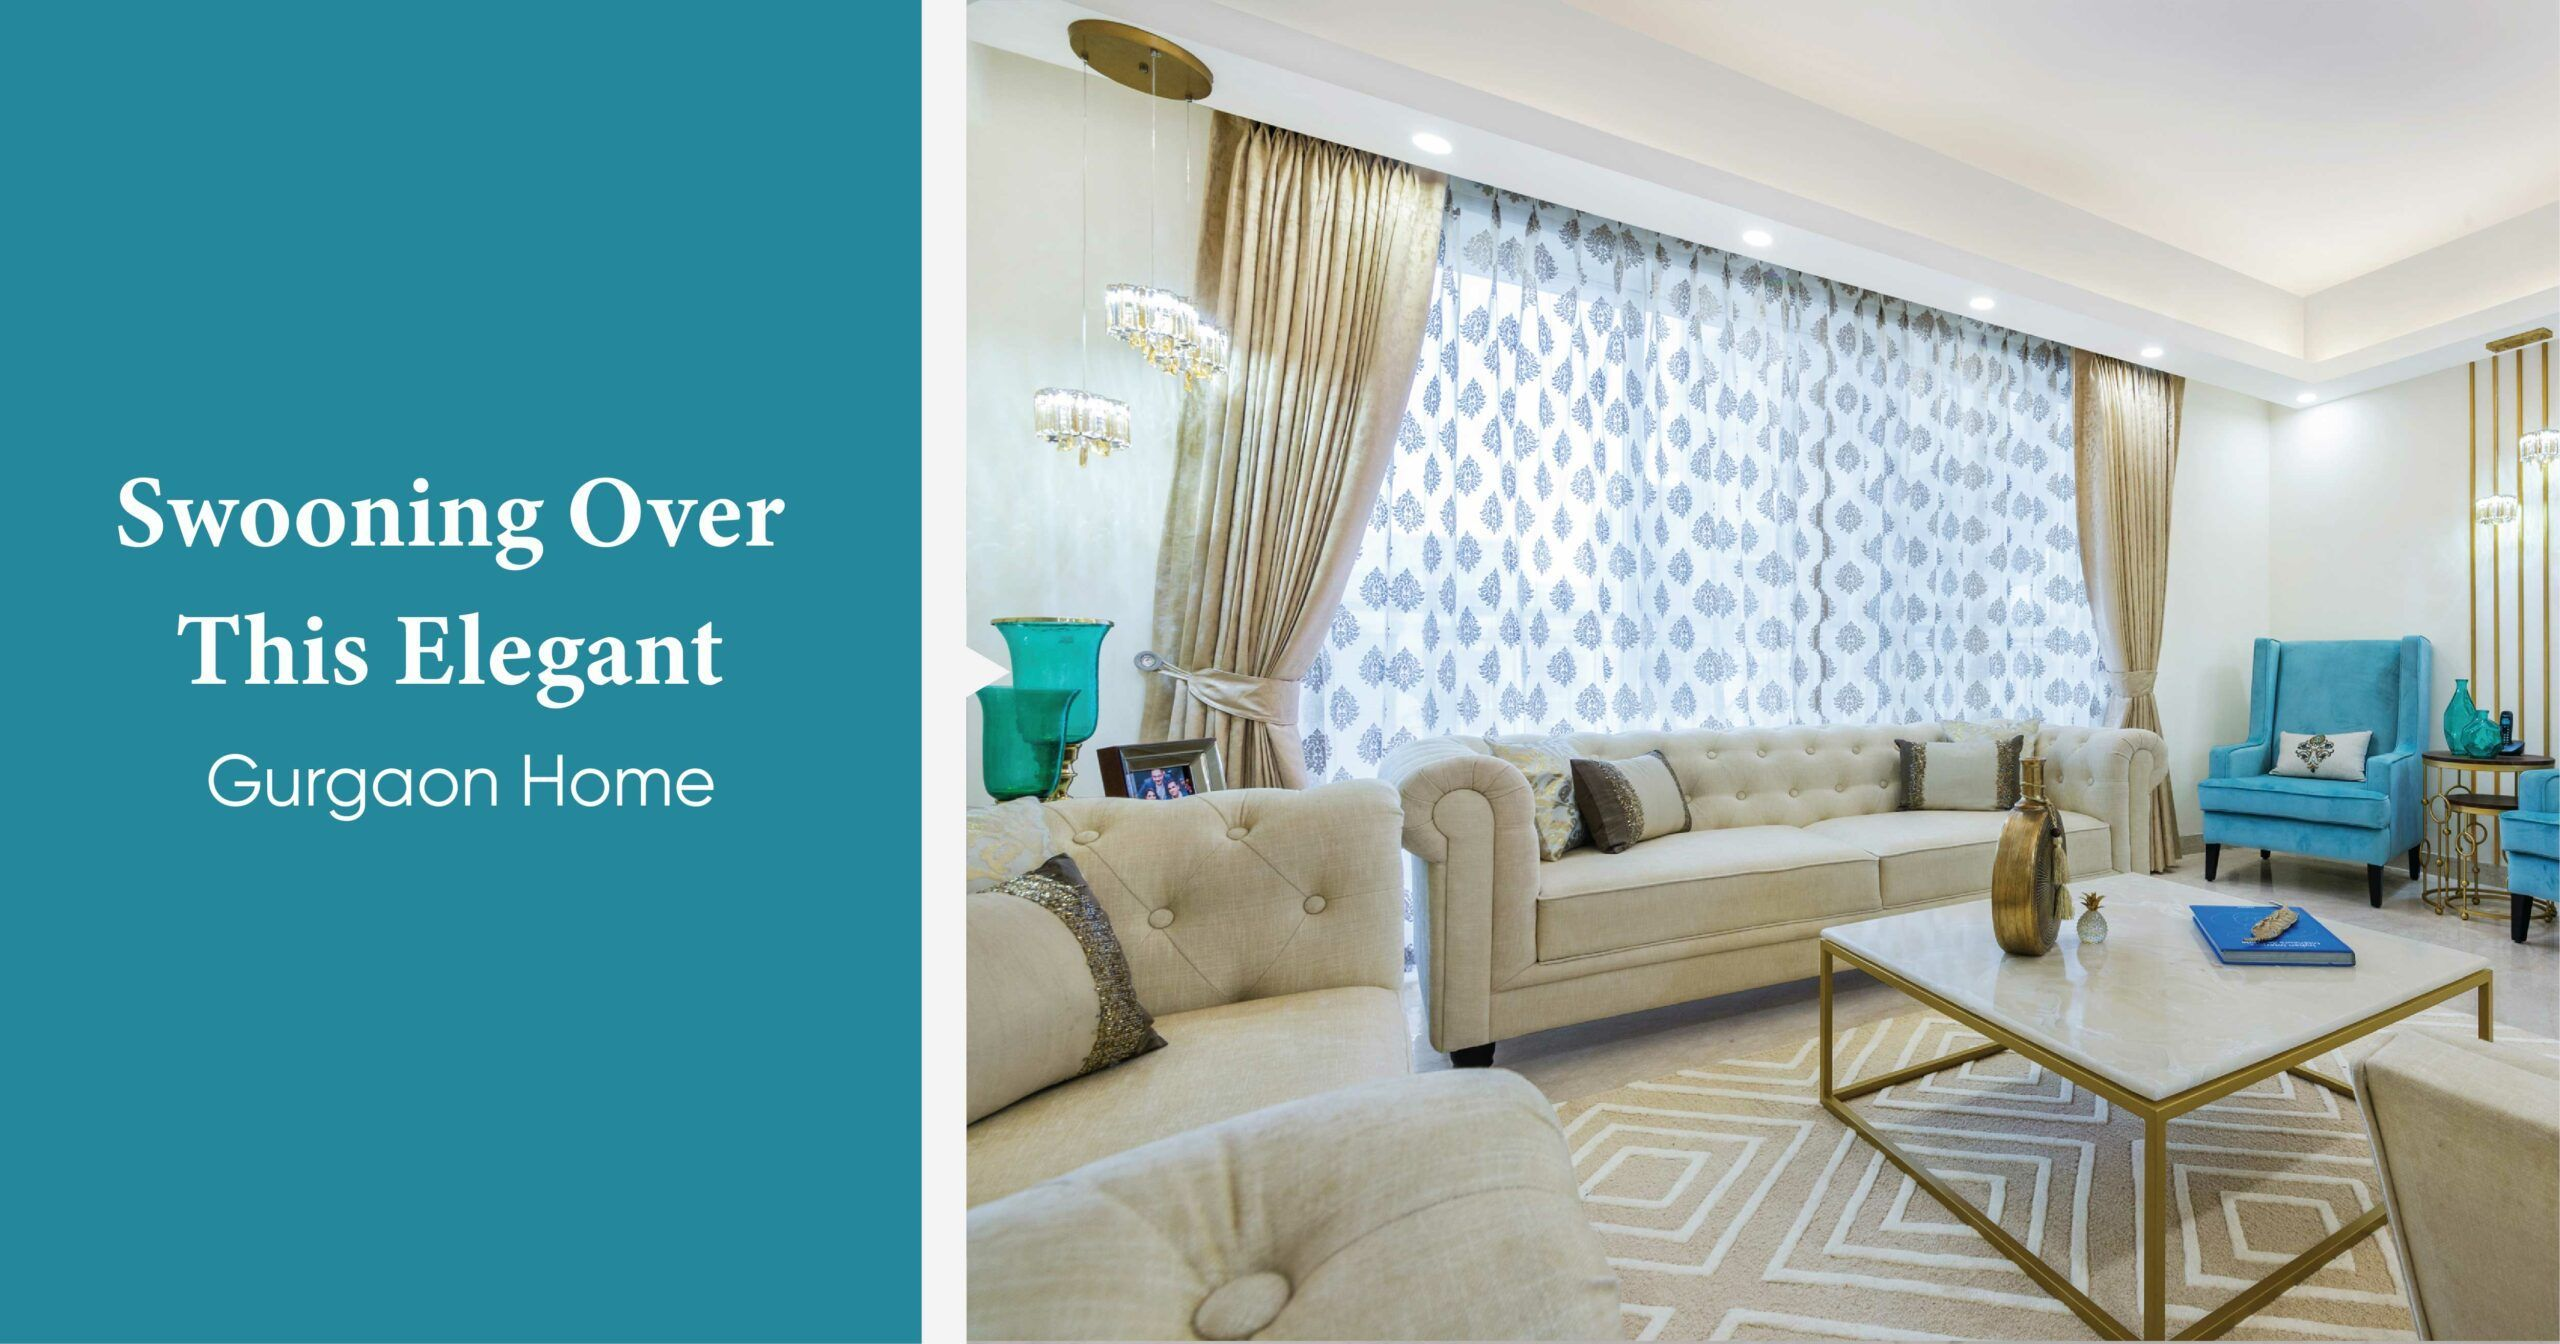 A Classy Home Design and How You Can Get this Look